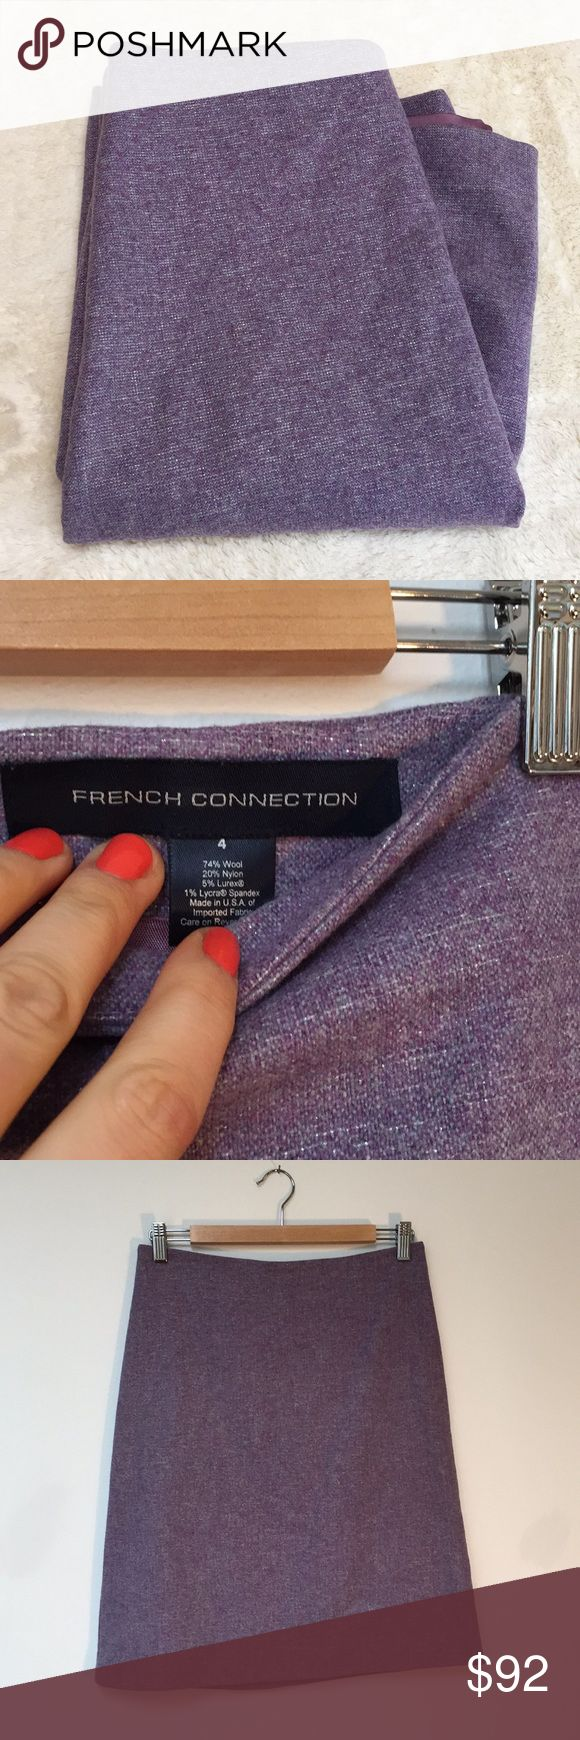 """French Connection Silver Threaded Wool Pencil Skt Beautiful condition soft and bright wool pencil skirt with hidden zip, excellent fit  29"""" Waist; 35"""" Hip; 21.25"""" Hem French Connection Skirts Pencil"""